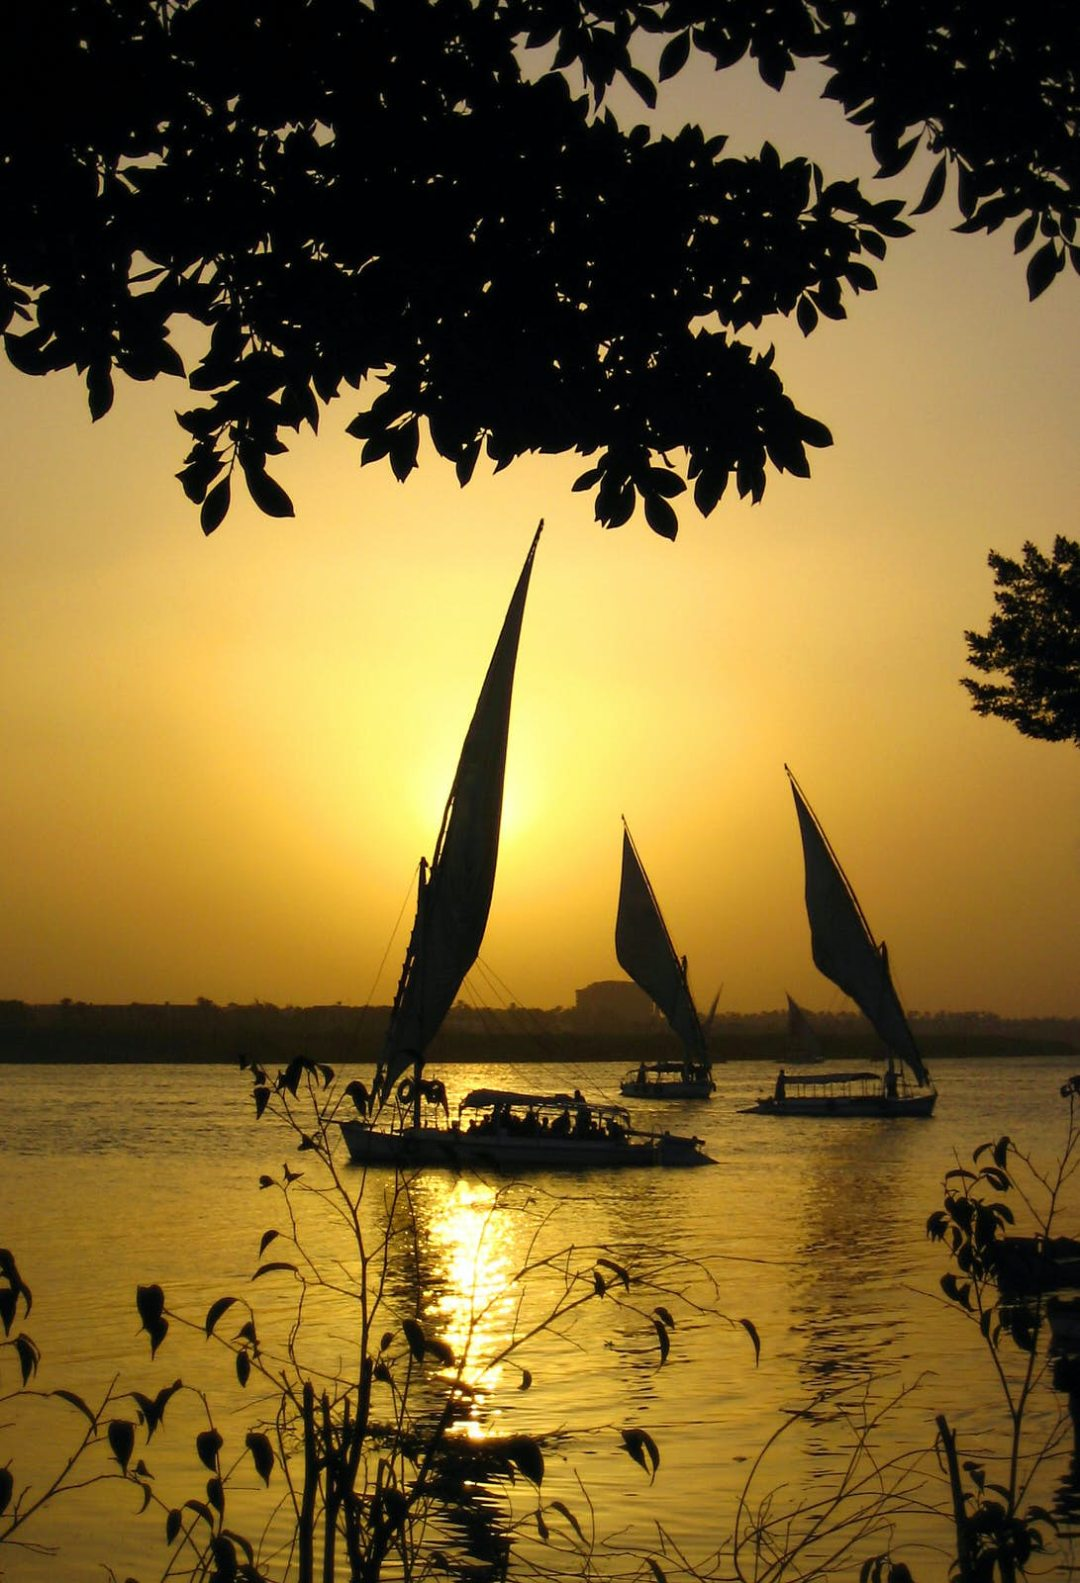 Sailing at sunset on the Nile near Cairo